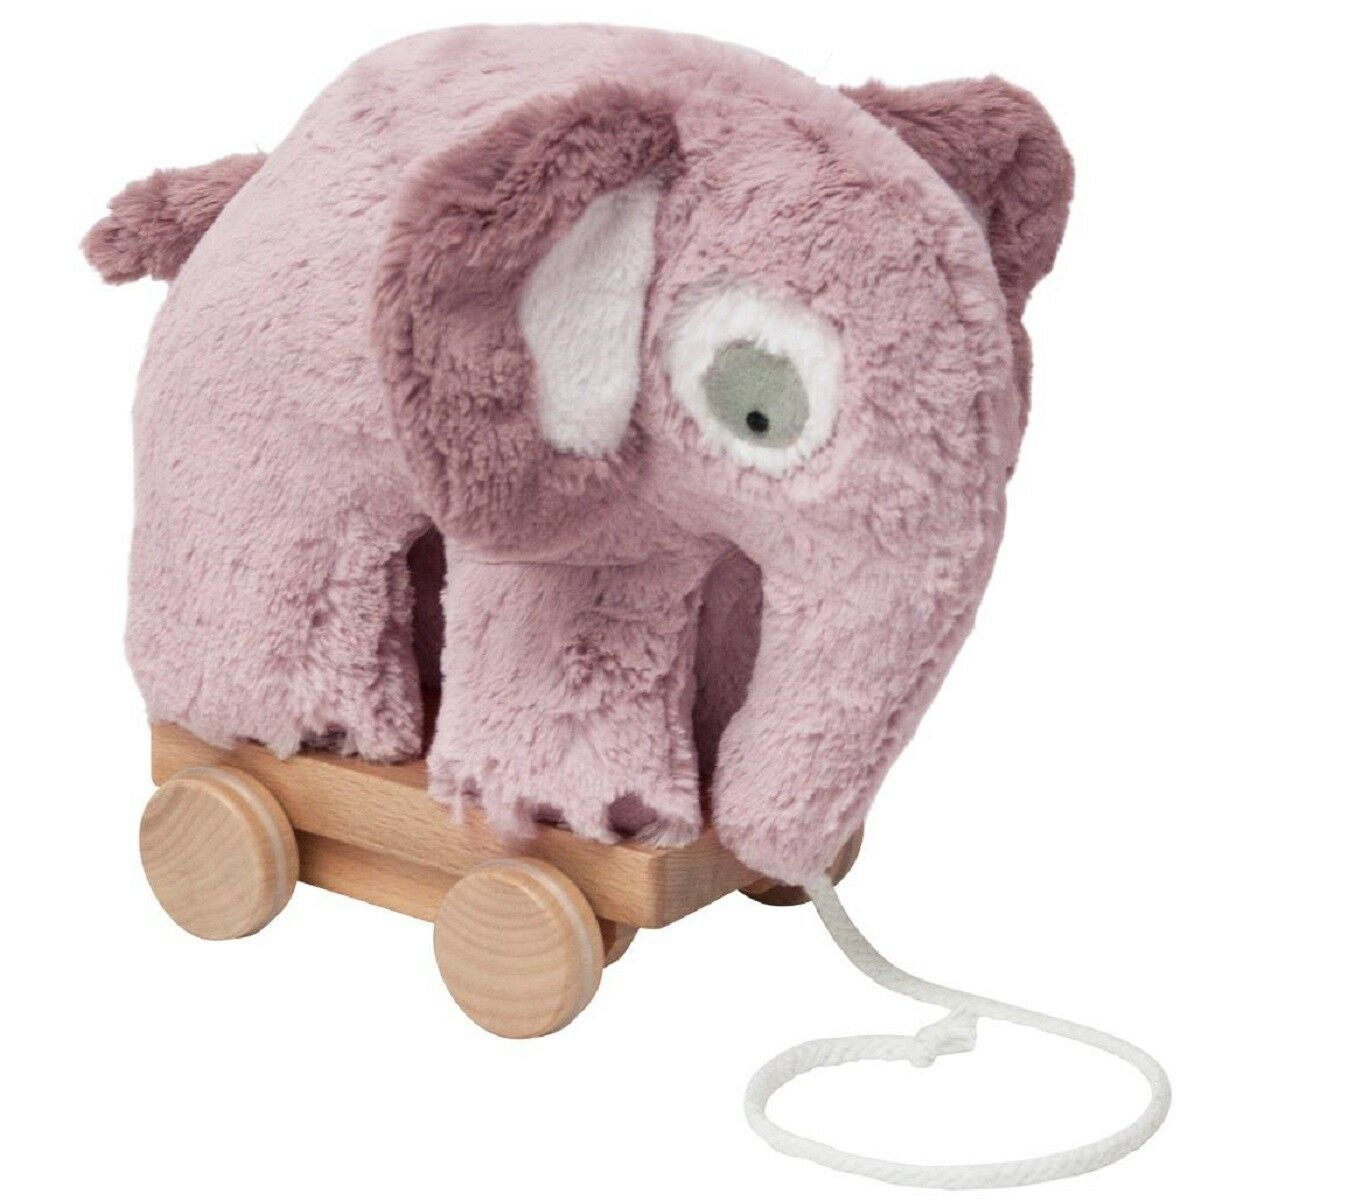 Sebra Pulling Toy Stuffed Elephant Old Pink on Casters Pull along Animal Wood